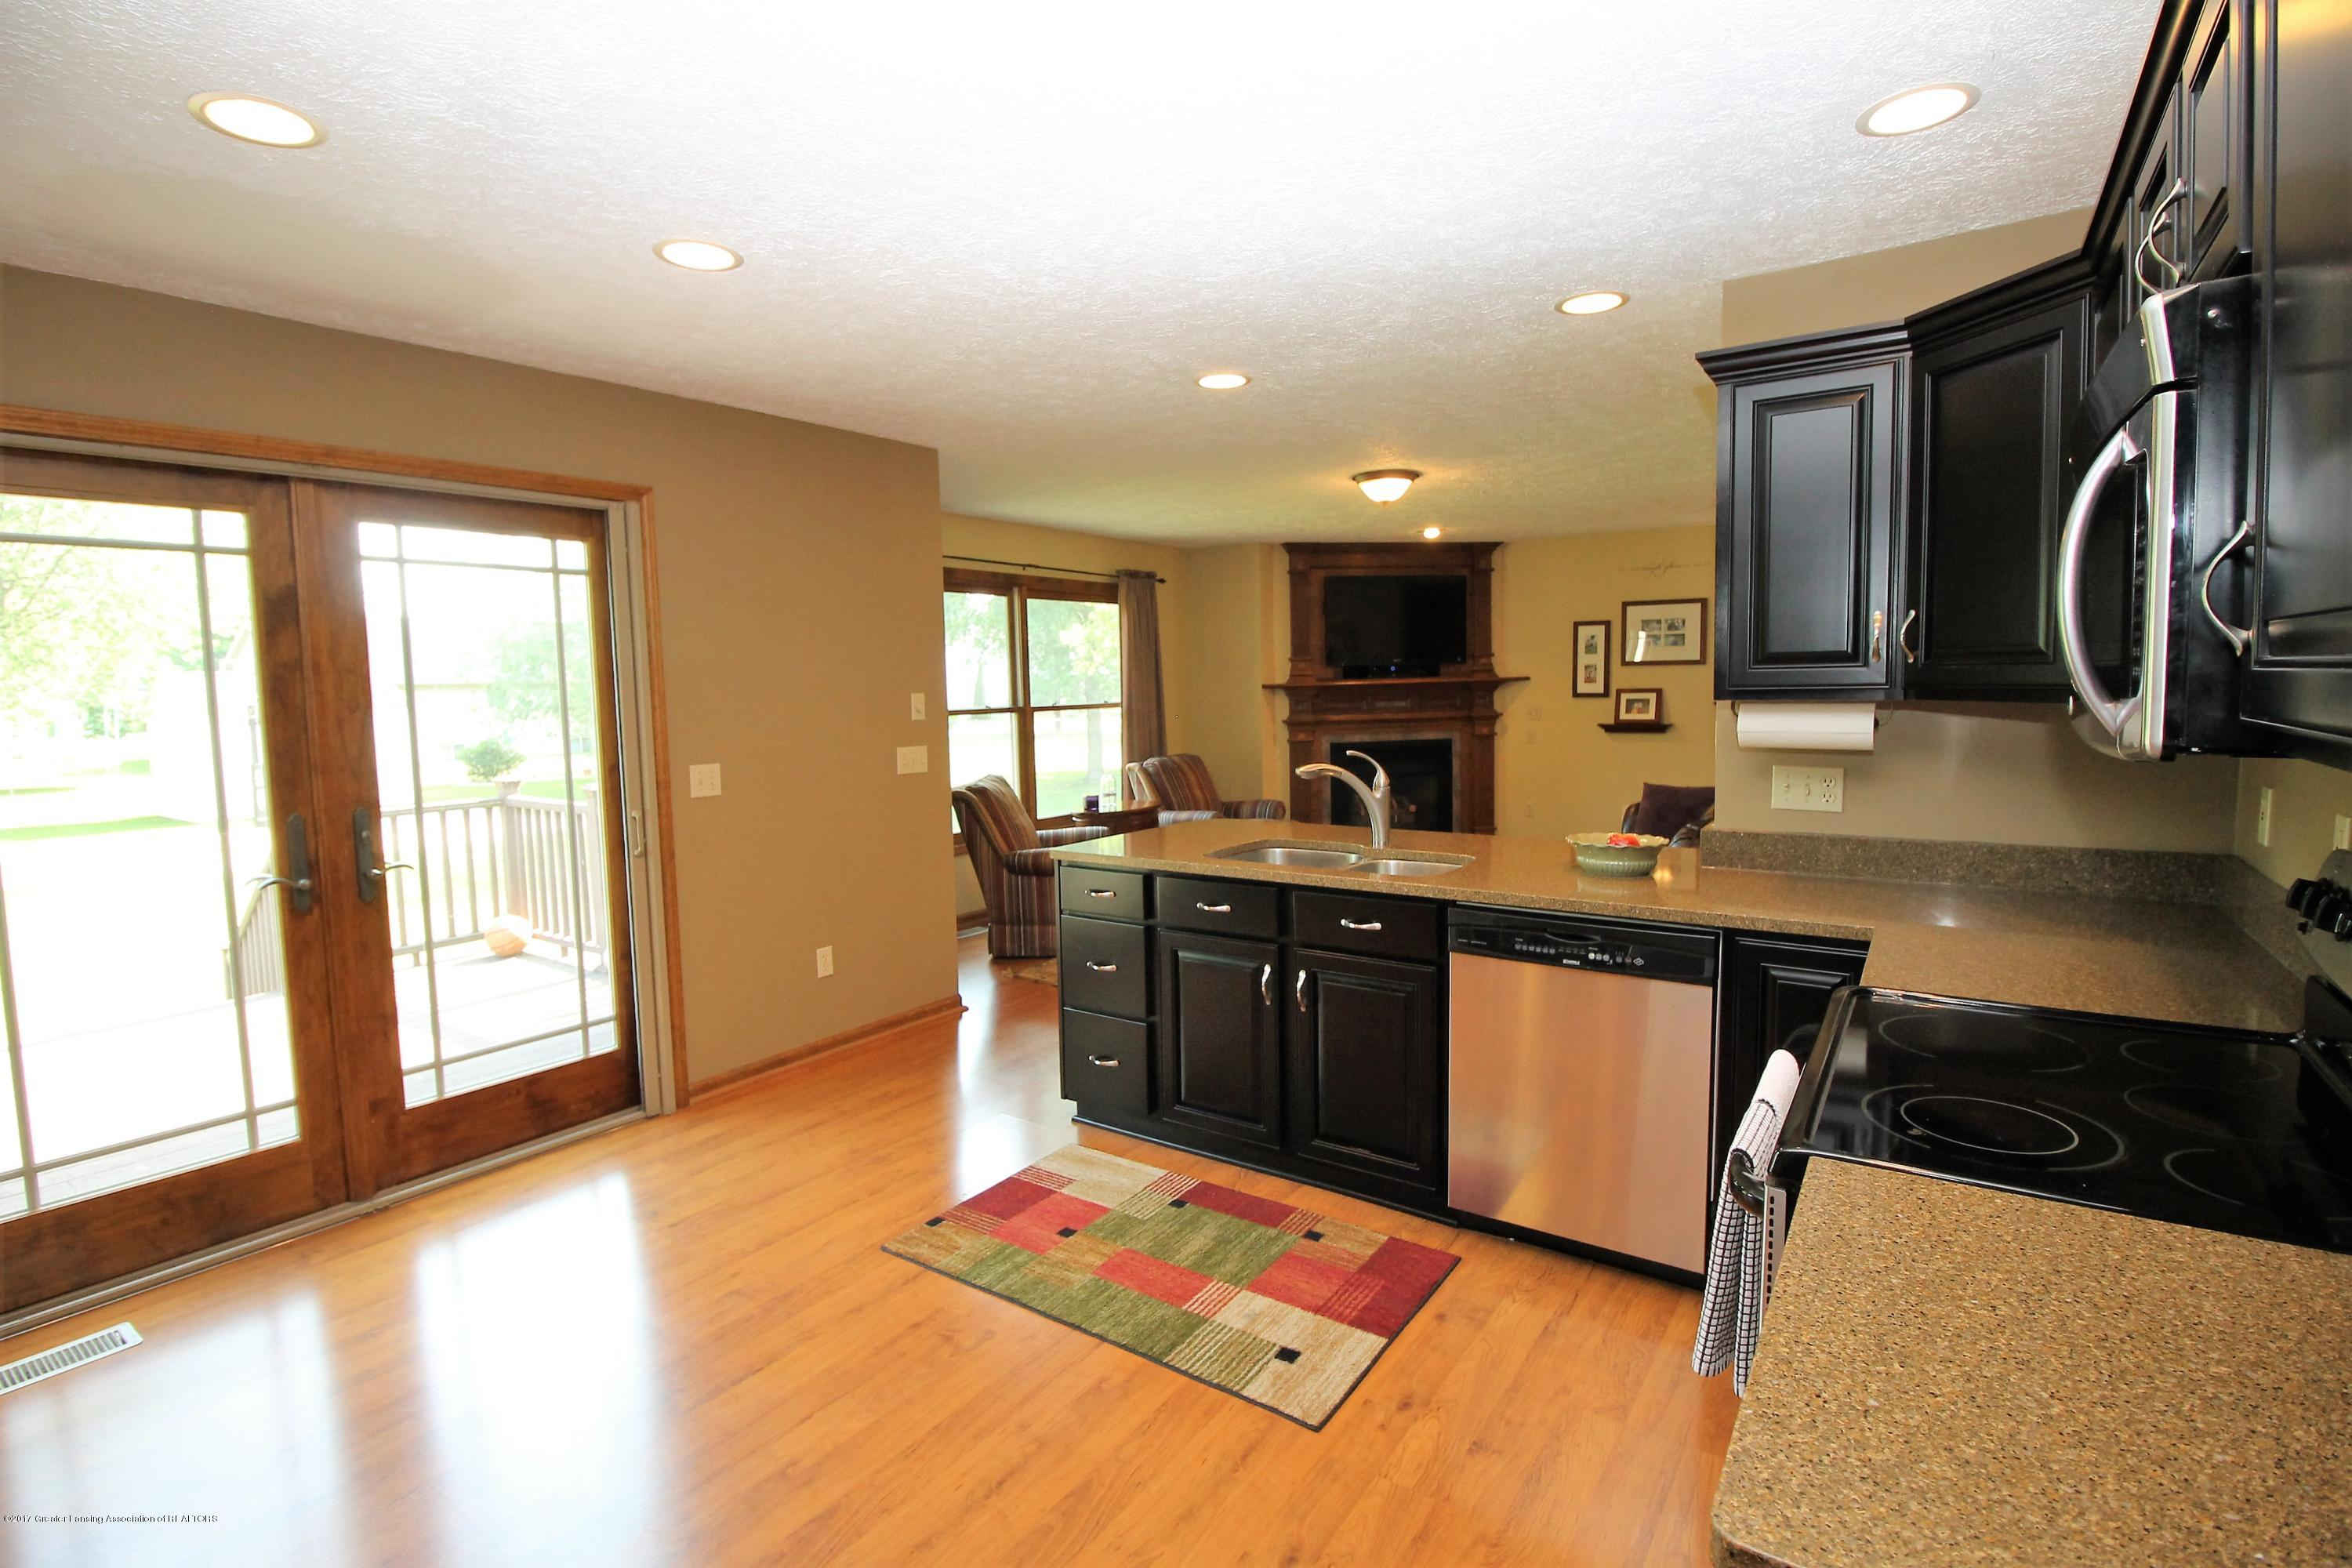 5855 MacMillan Way - 3. Alt Kitchen View - 3